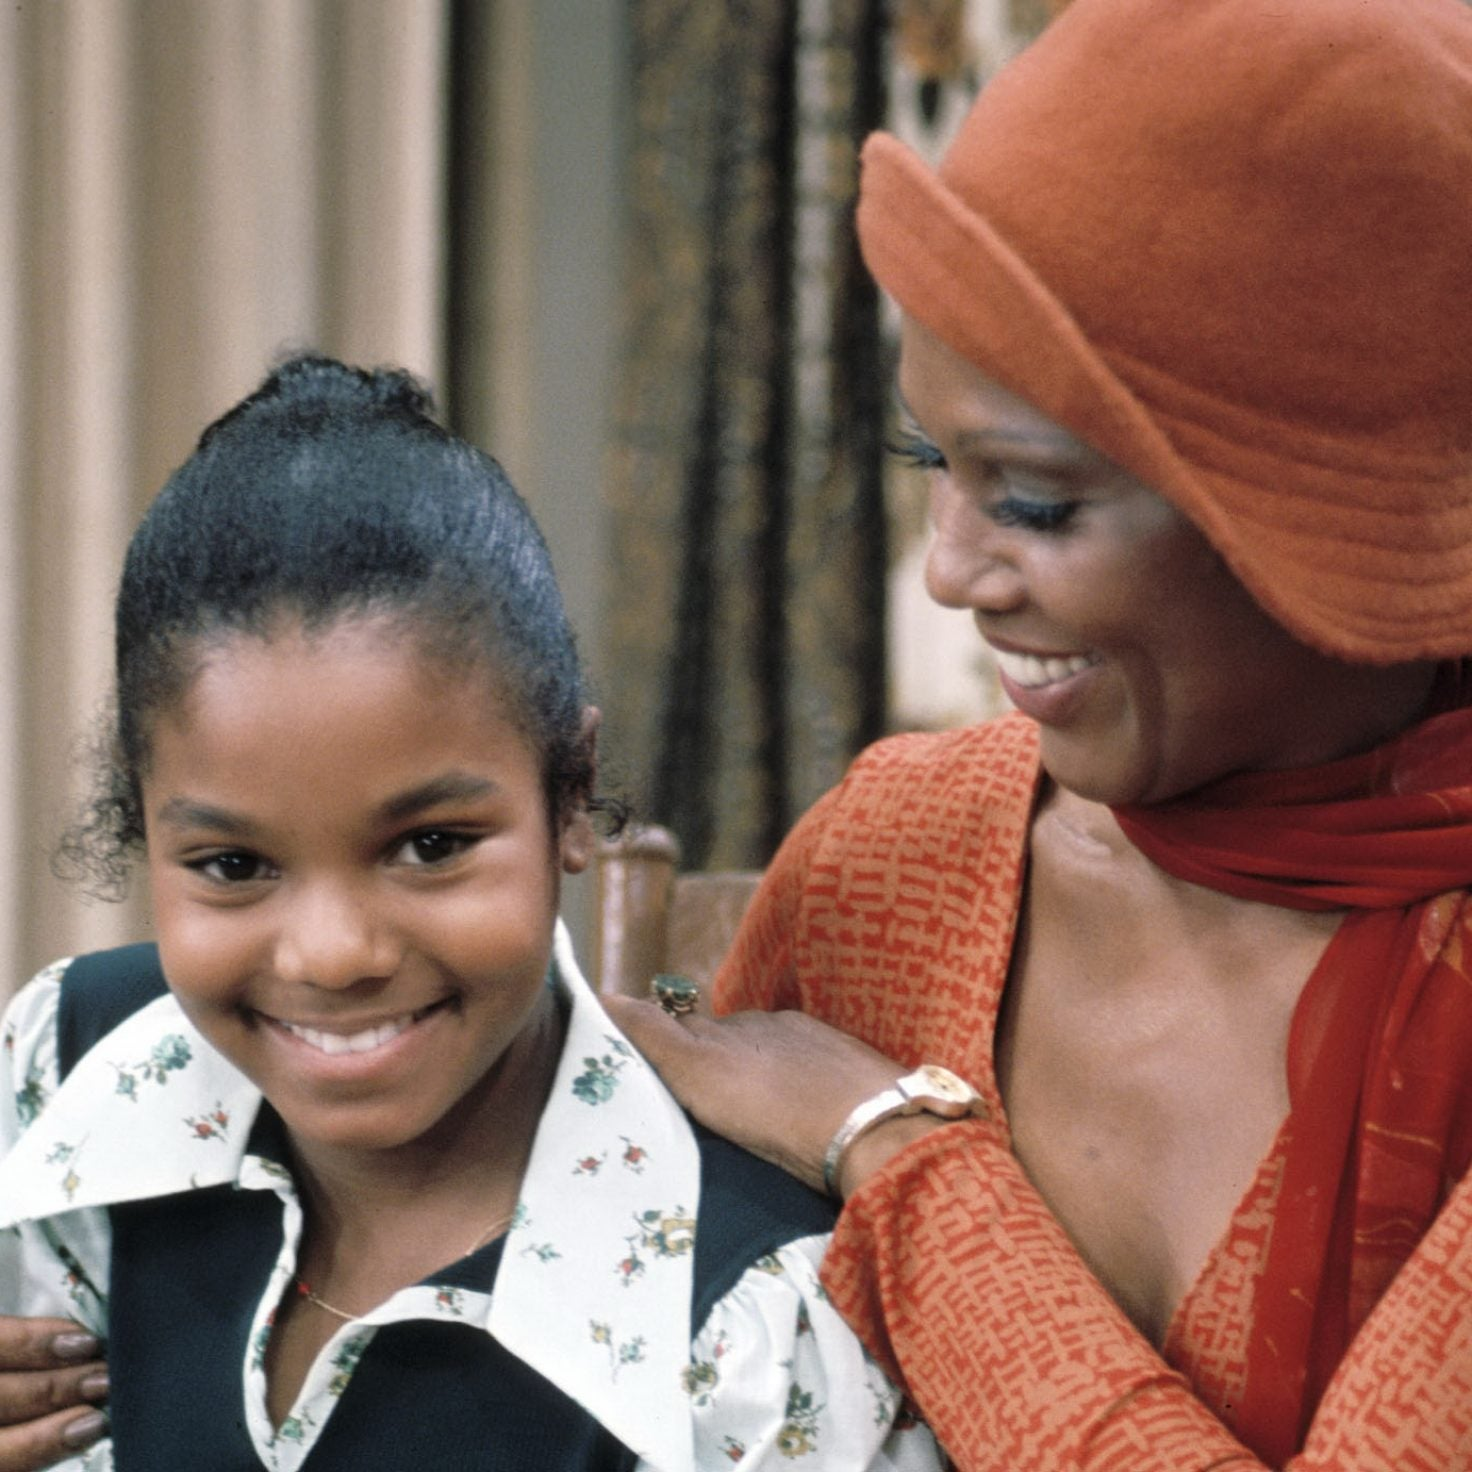 Janet Jackson Pens Touching Tribute To 'Good Times' Co-Star Ja'Net DuBois: 'I'll Miss You'